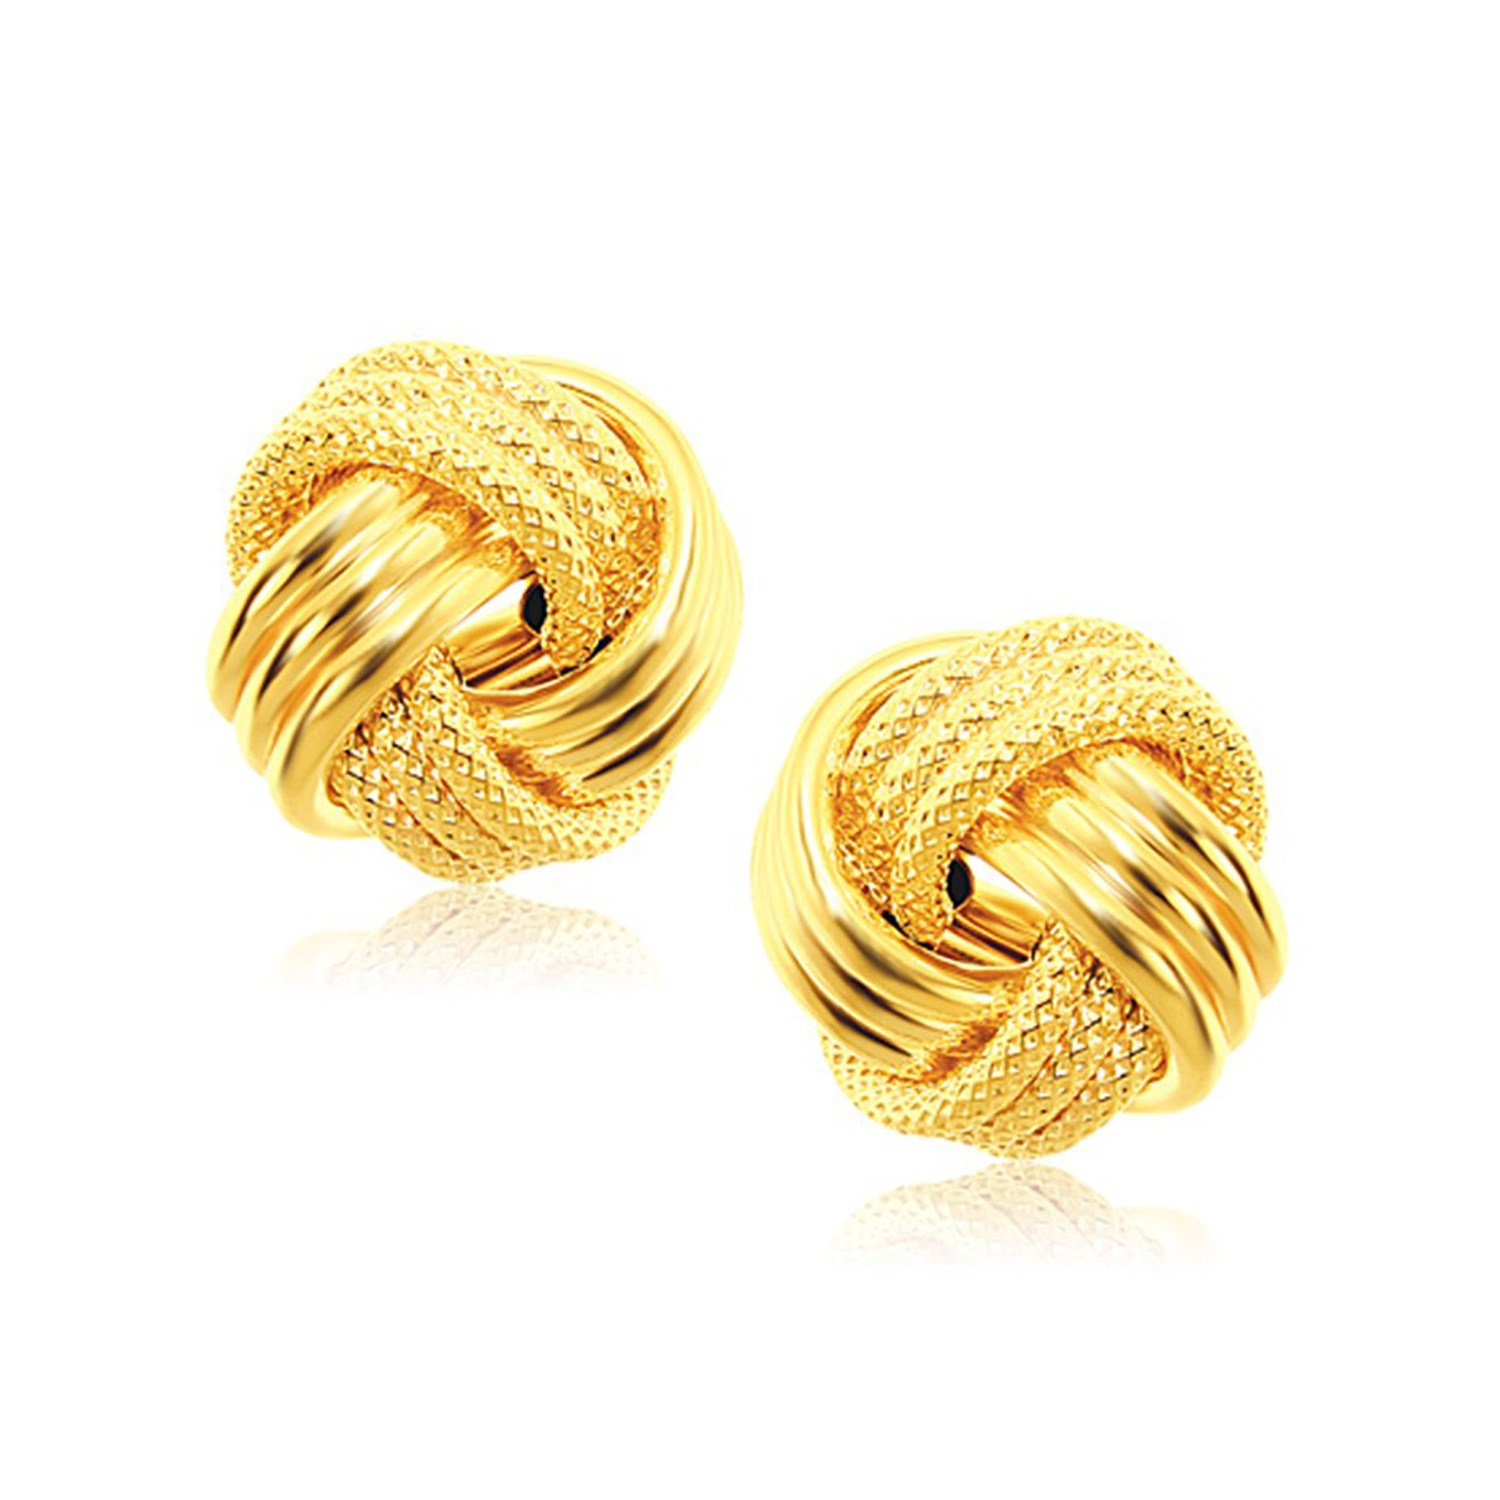 interweaved love knot stud earrings in 14k yellow gold. Black Bedroom Furniture Sets. Home Design Ideas